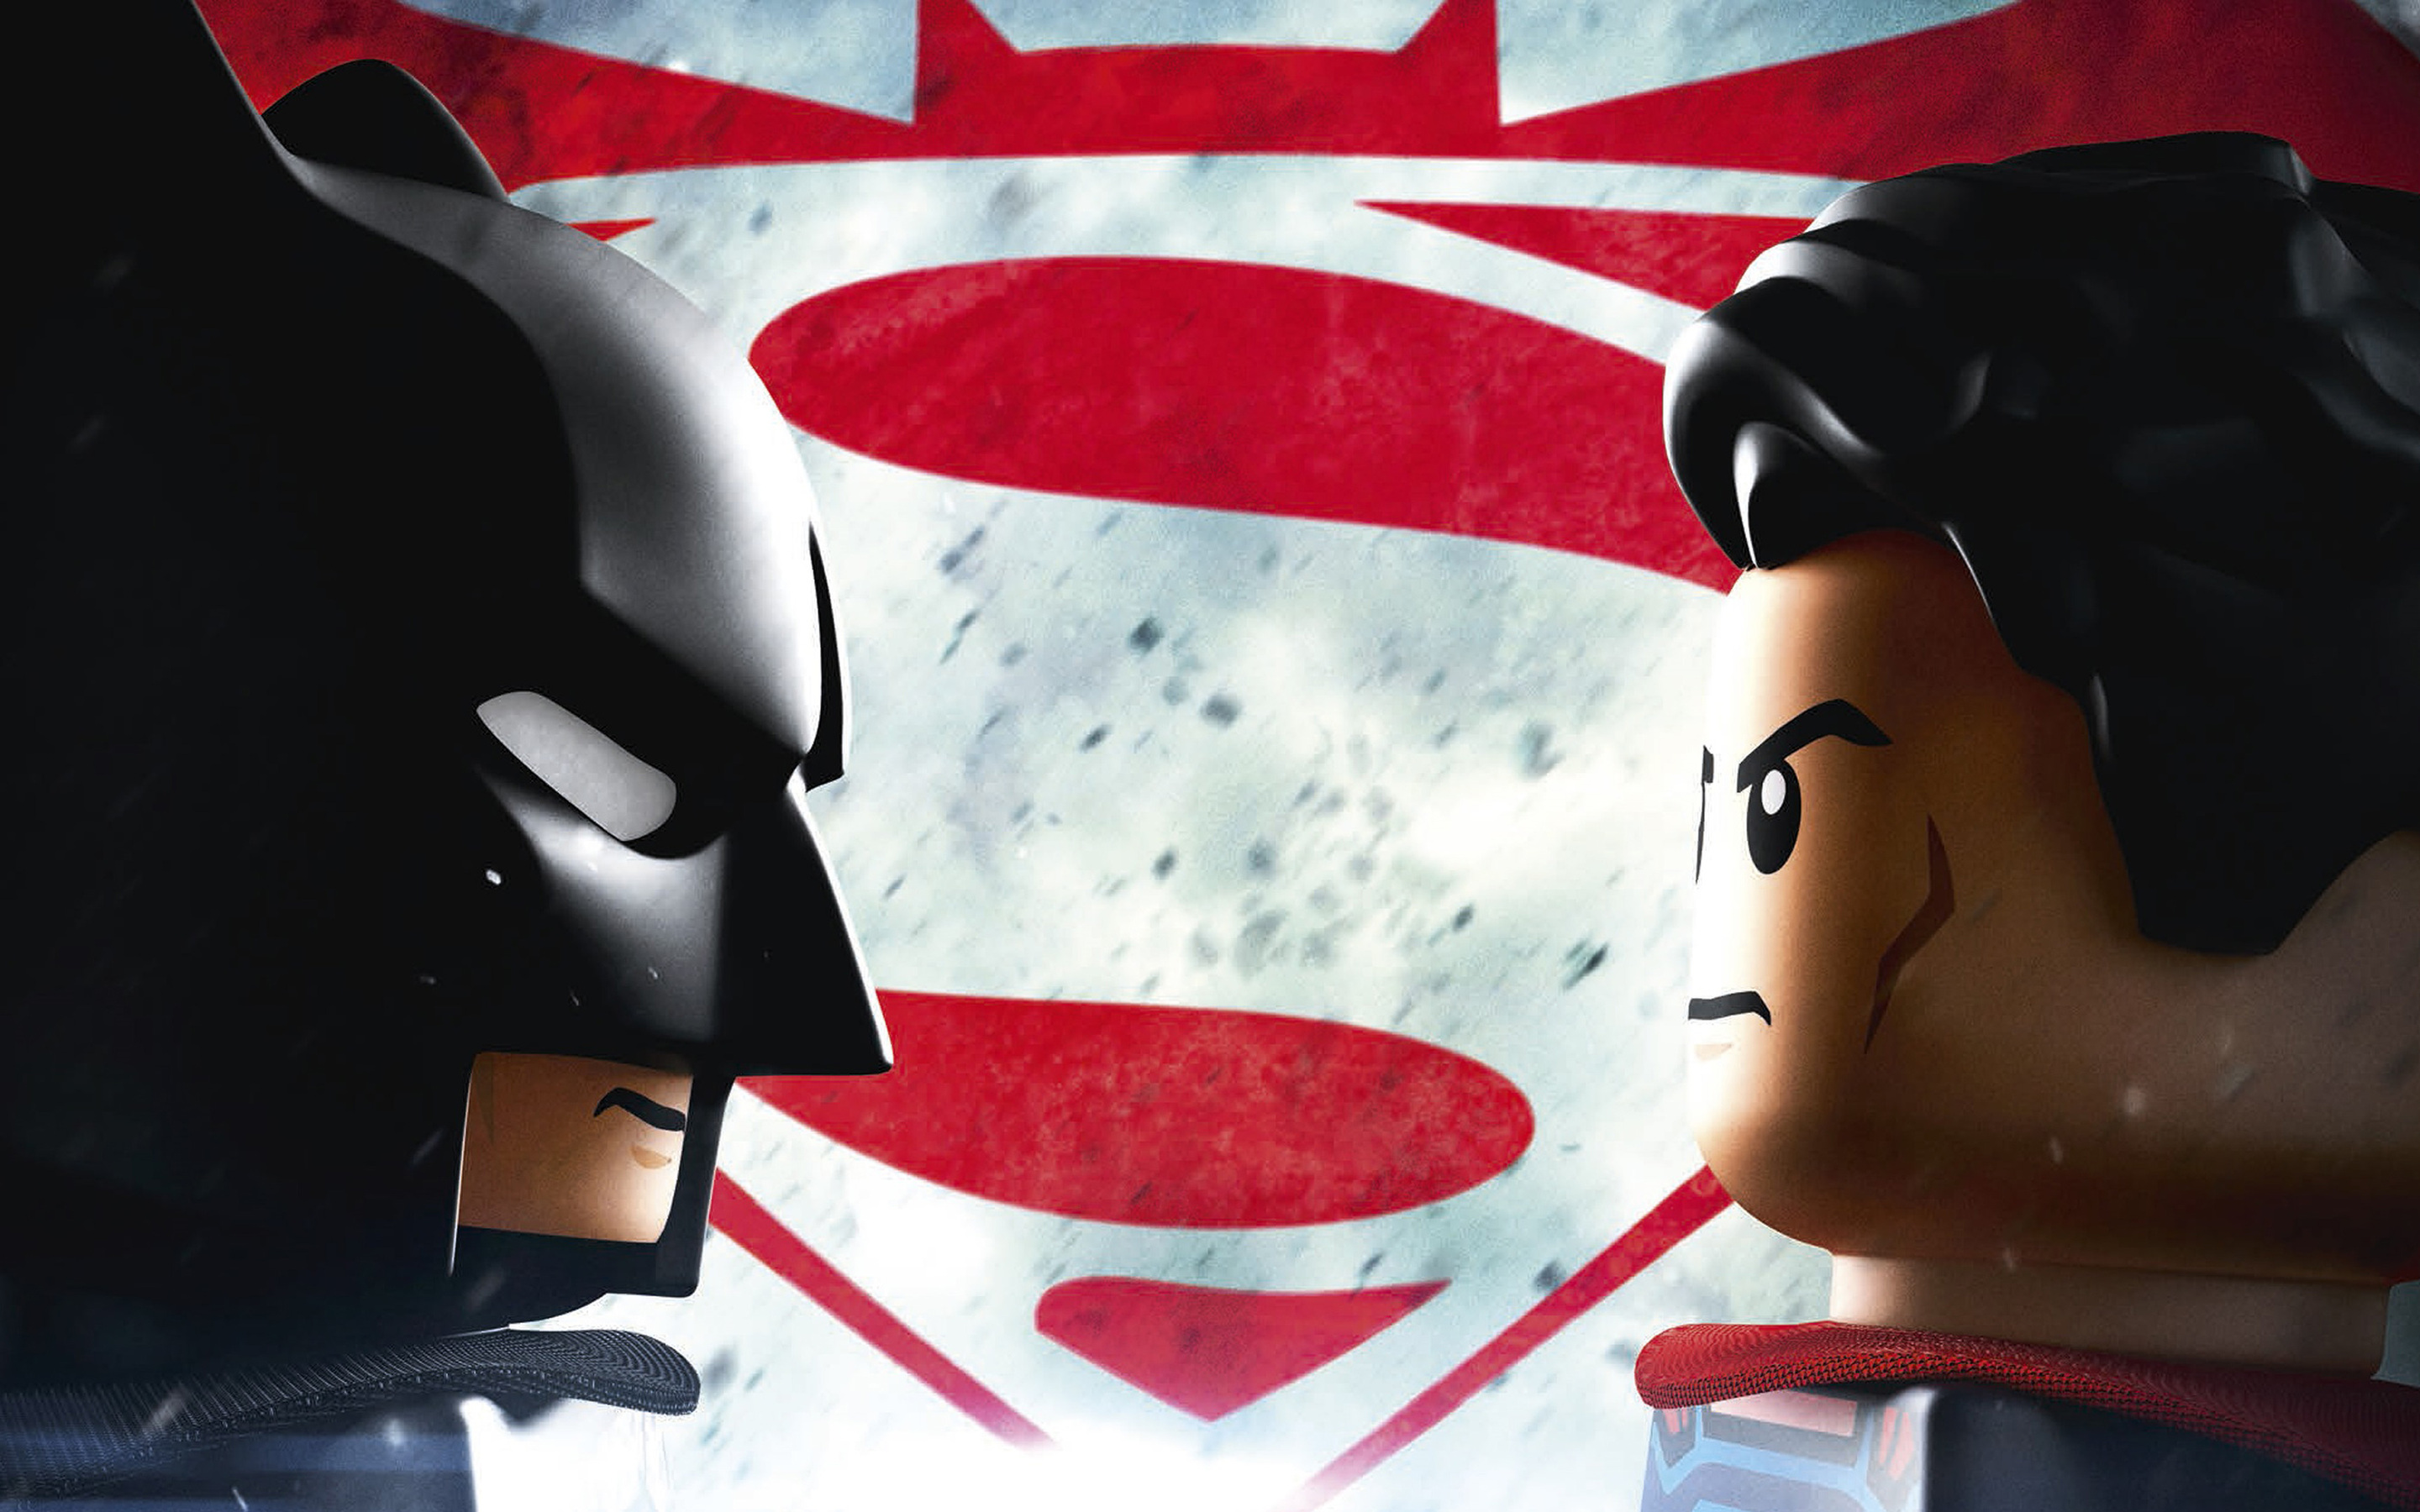 batman-v-superman-lego-2016-sd.jpg